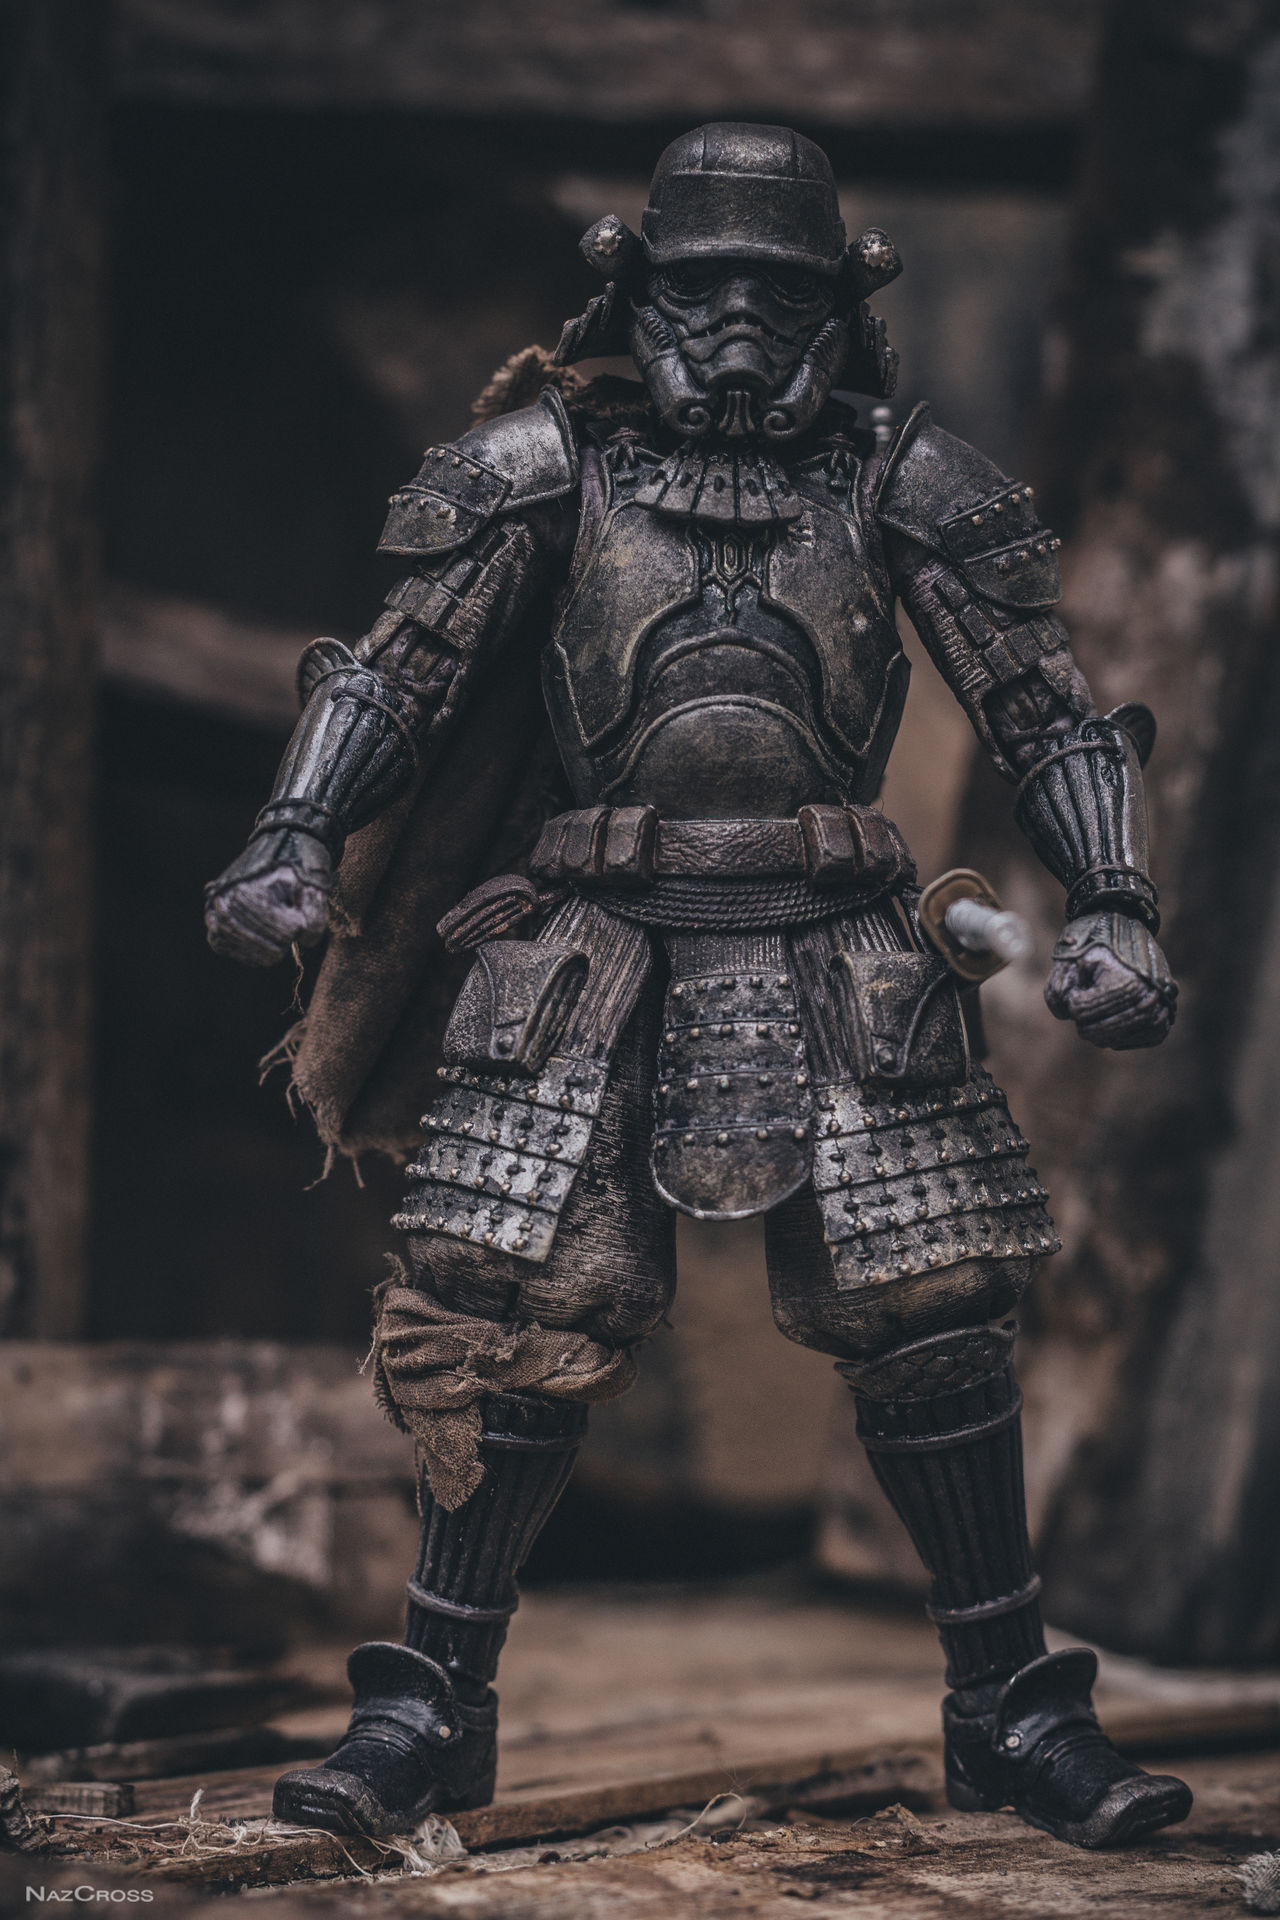 Actionfigurekitbash BANDAI Canon Roguetrooper Starwars Toycommunity Toygroup_alliance Toyphotography Toyvisuals